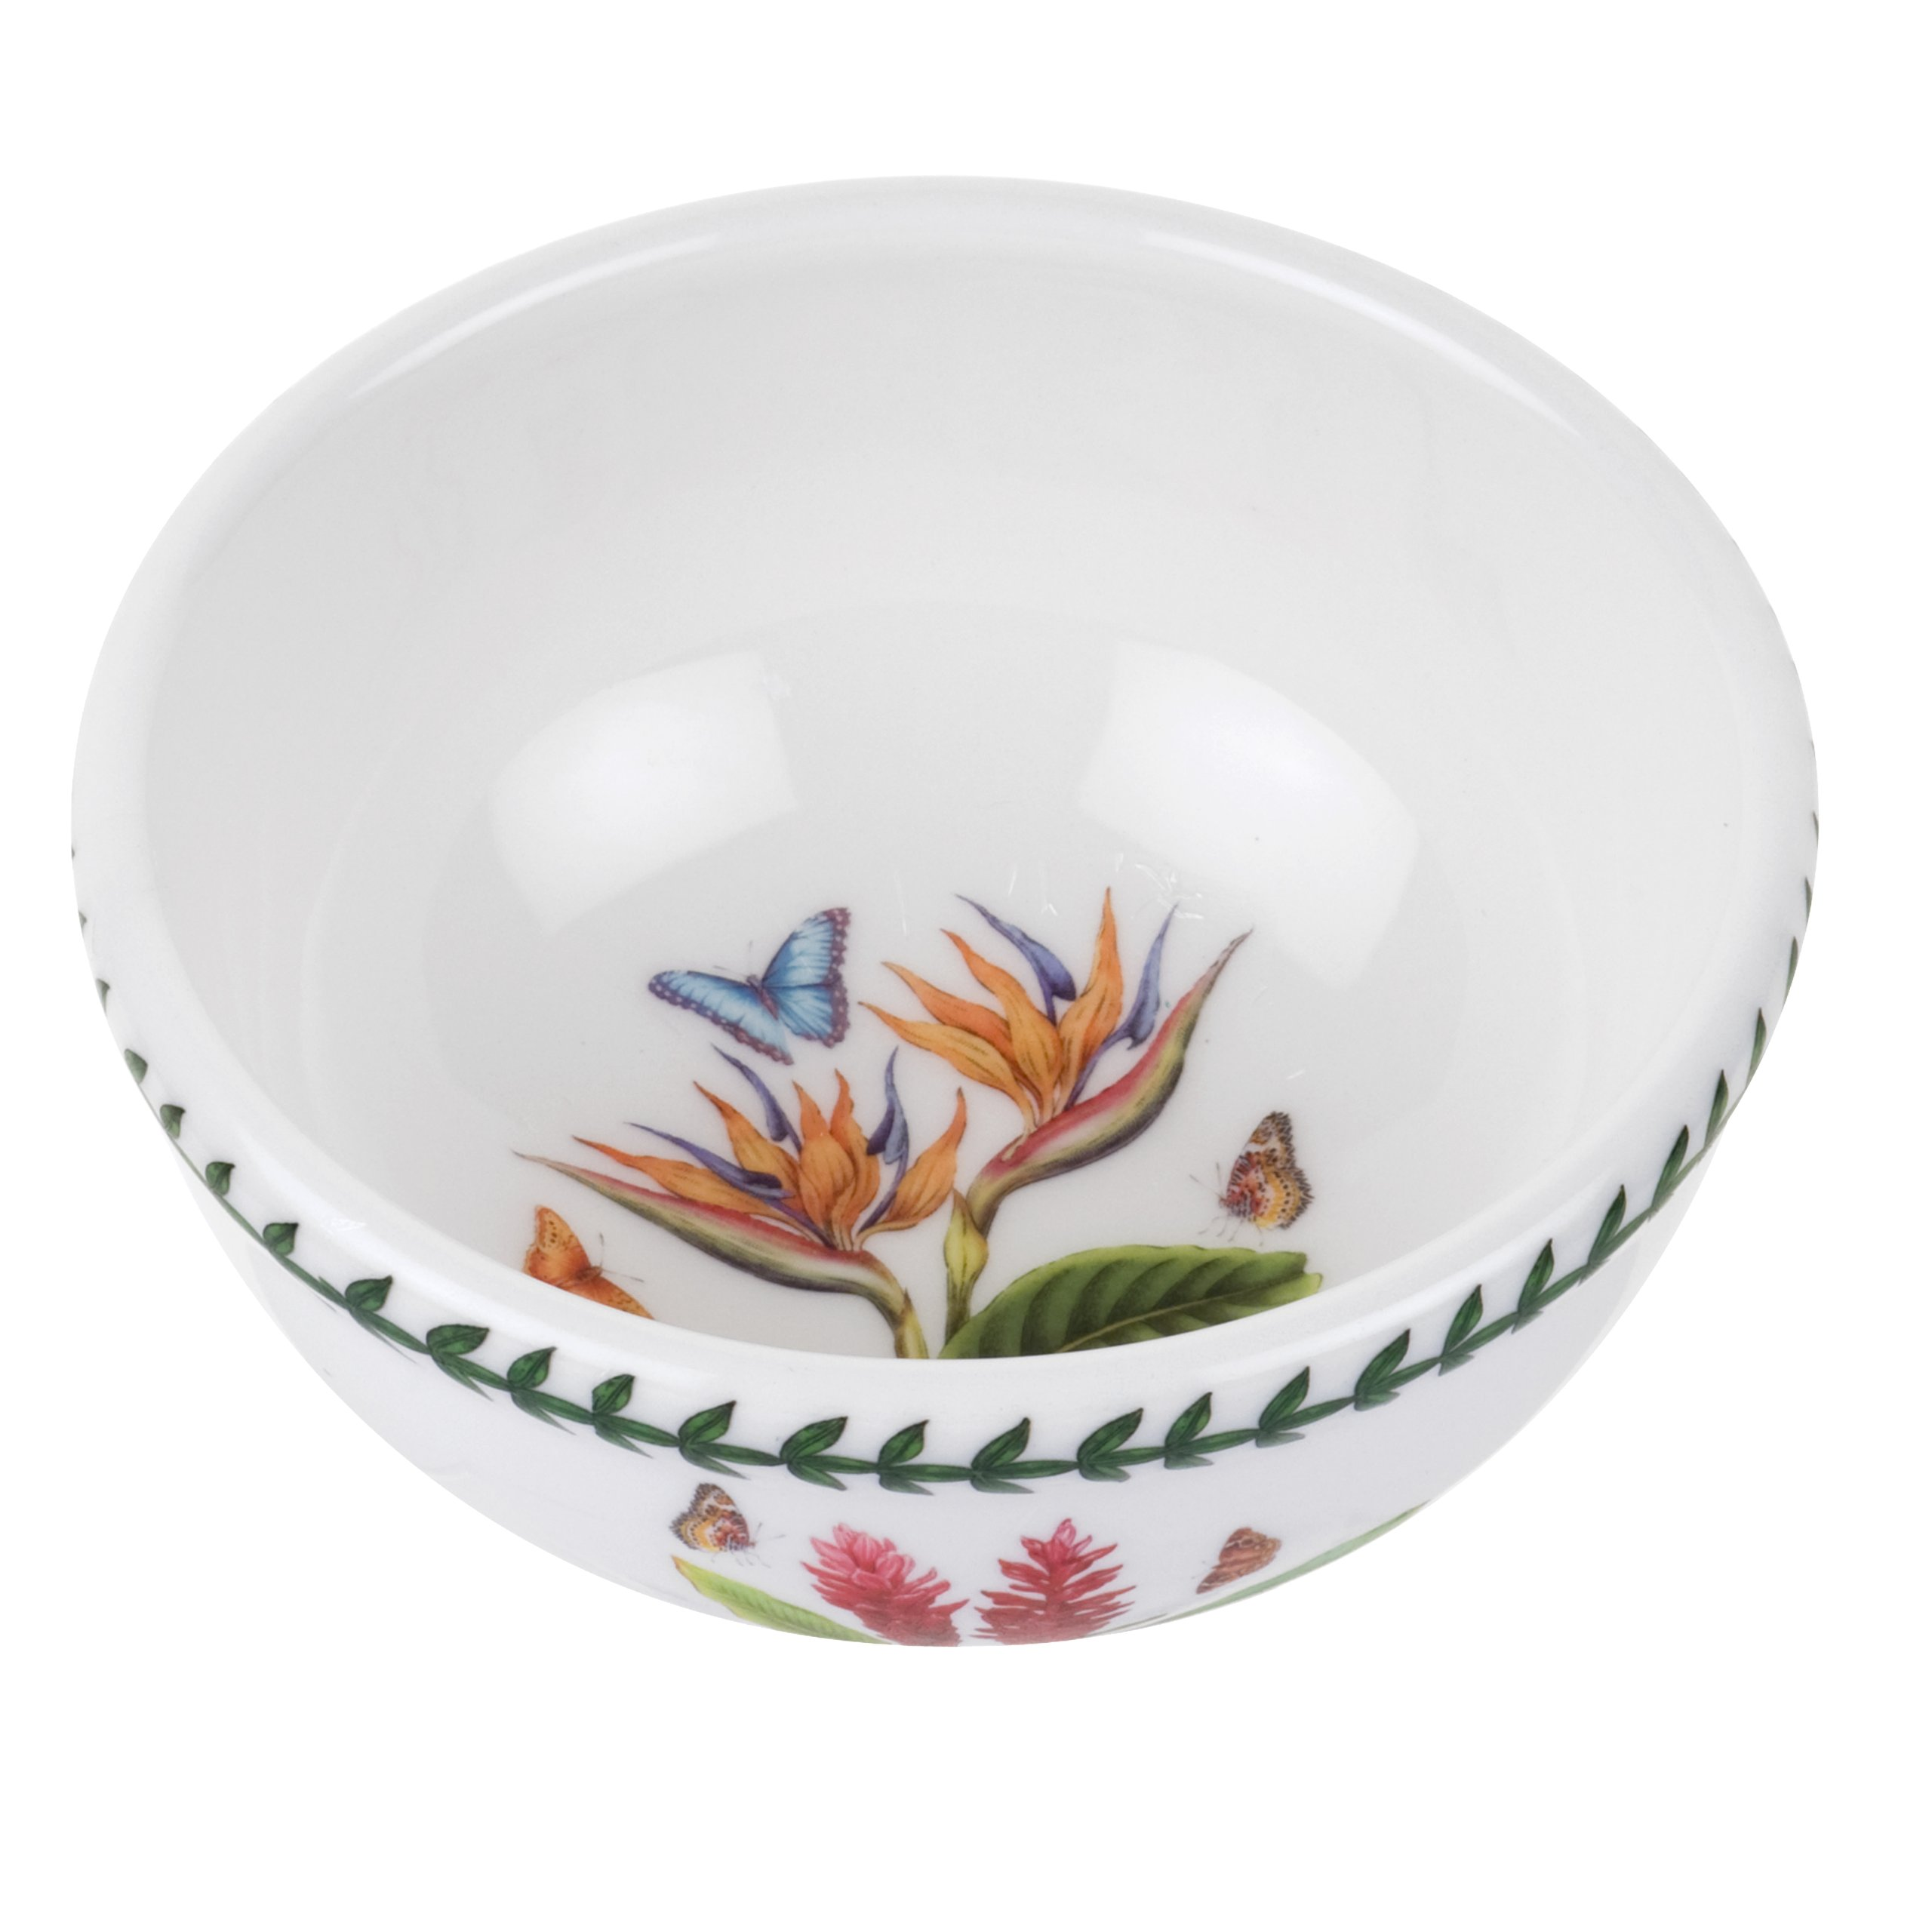 Portmeirion Exotic Botanic Garden Individual Fruit Salad Bowl with Bird of Paradise, Set of 6